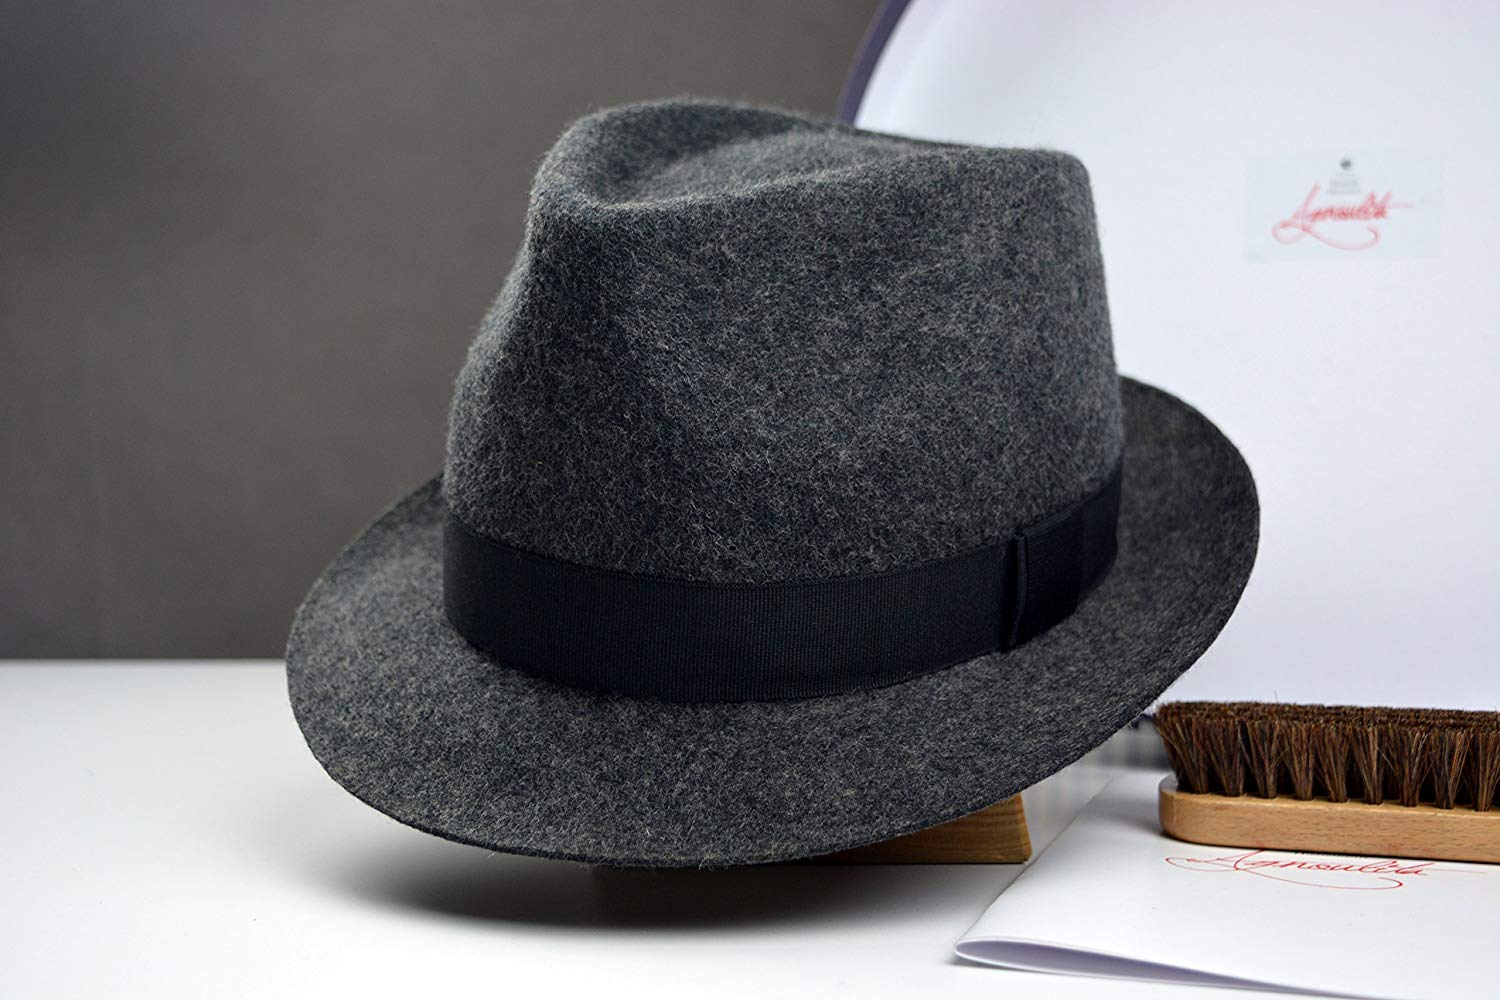 bef709978f1 Get Quotations · The Andy - Dark Grey Wool Felt Tweed Trilby Fedora Hat -  Stingy Brim - Men